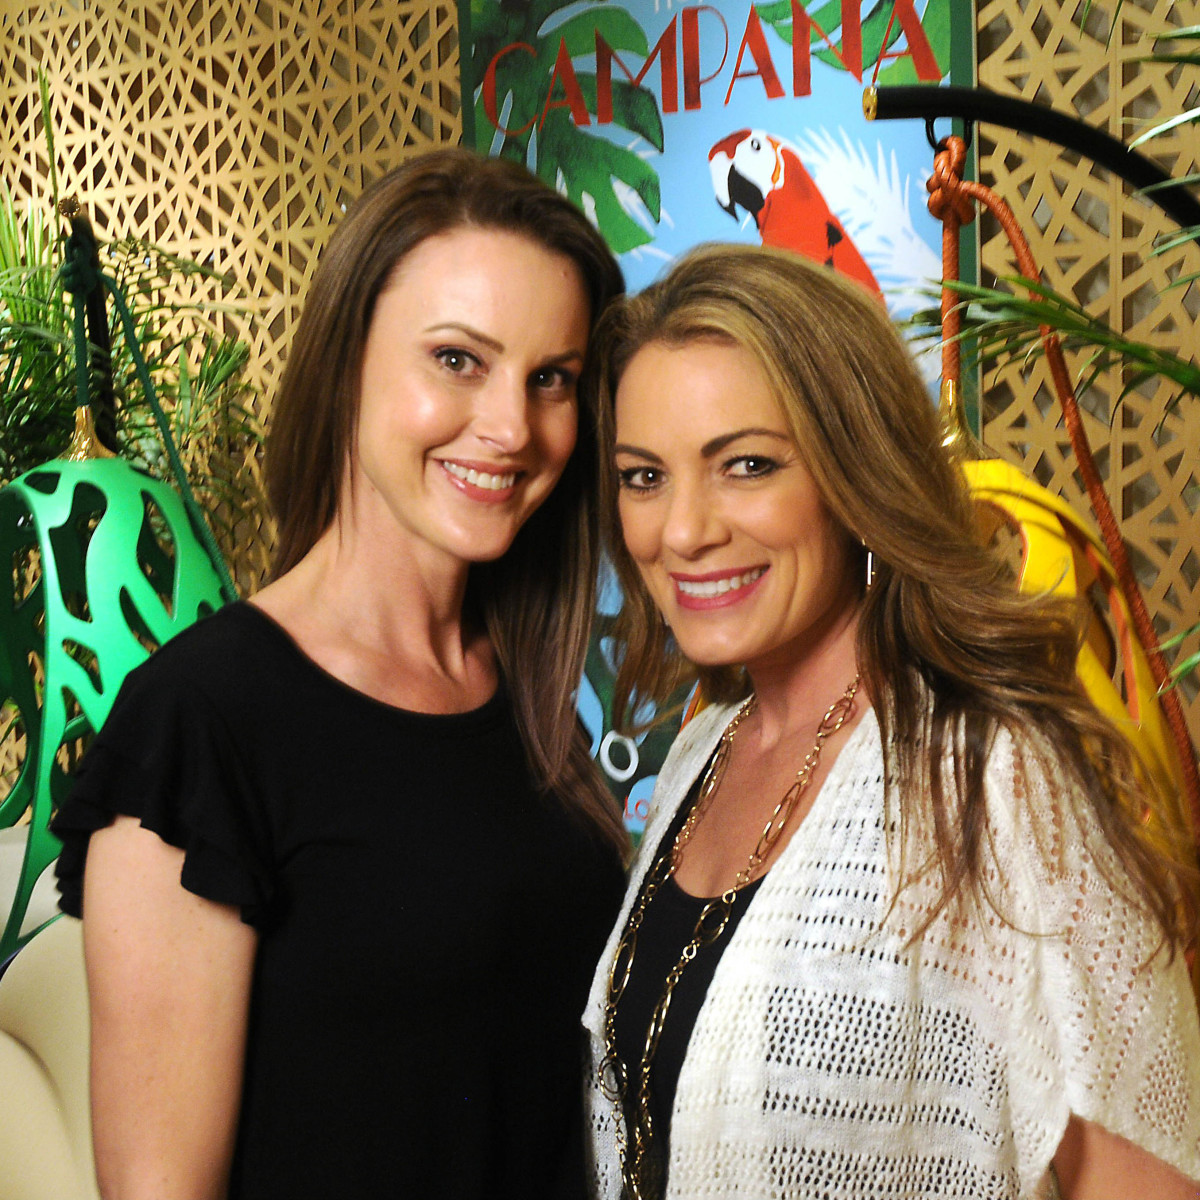 Heidi Lynch and Lorie Faetche